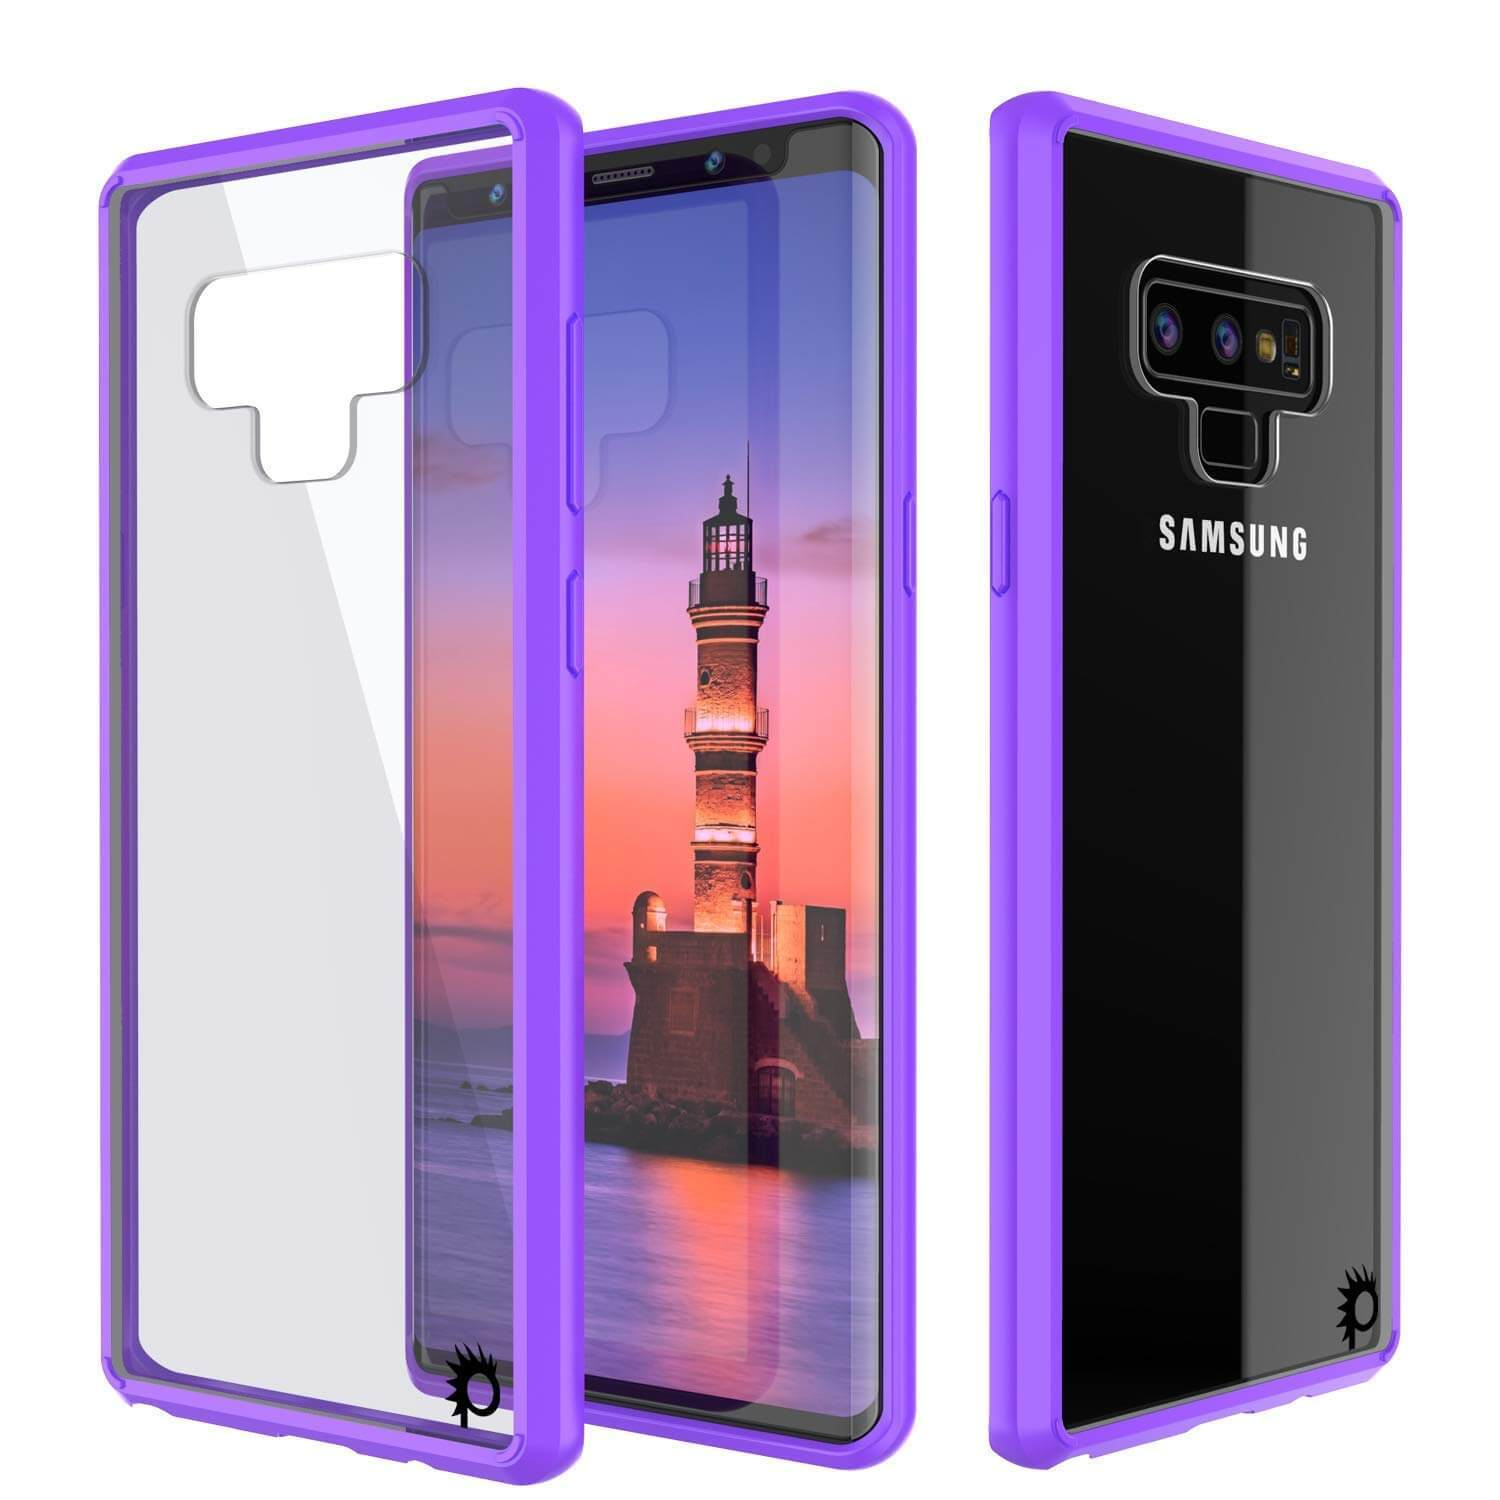 Galaxy Note 9 Case, PUNKcase [LUCID 2.0 Series] [Slim Fit] Armor Cover W/Integrated Anti-Shock System [Purple]